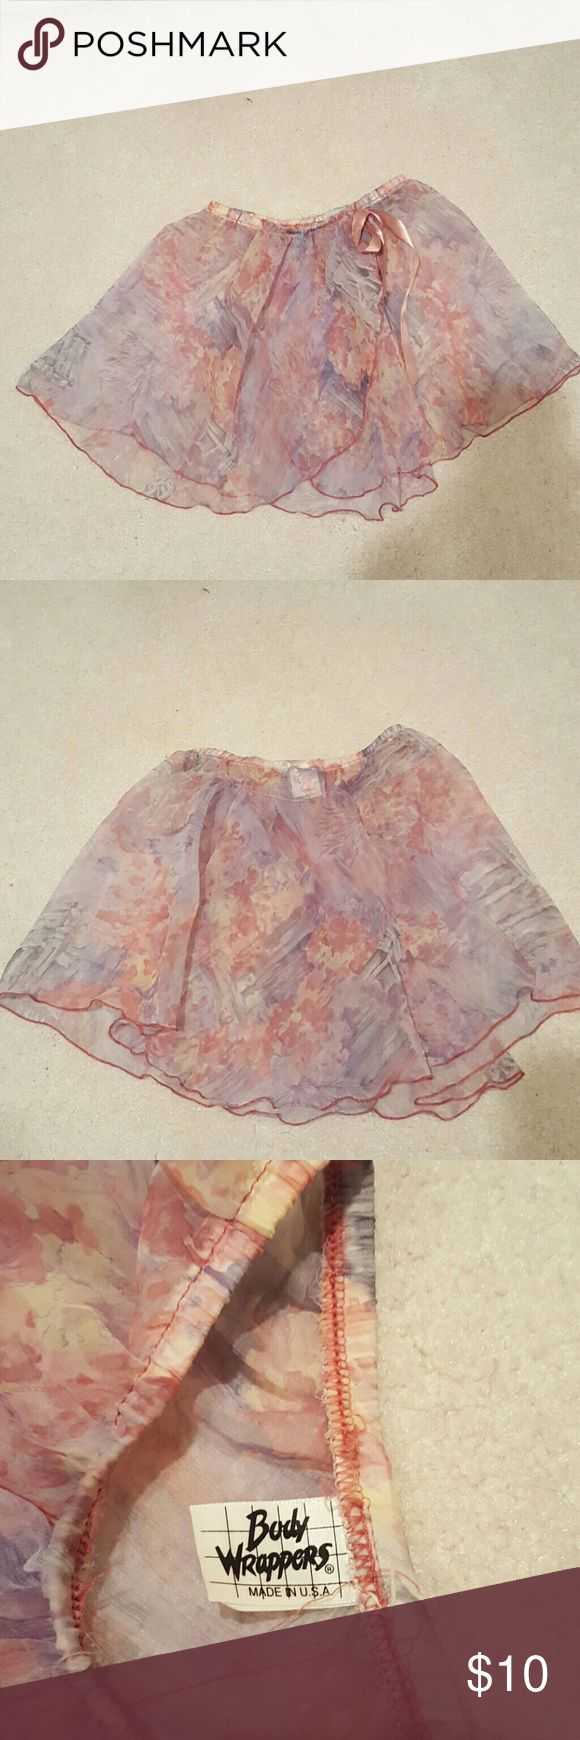 Girls Ballet Skirt Beautiful sheer floral wrap around ballet skirt with elastic waist and side bow beautiful flowing fabric is perfect for any ballerina ..girls Size medium/large Body Wrappers  Costumes Dance